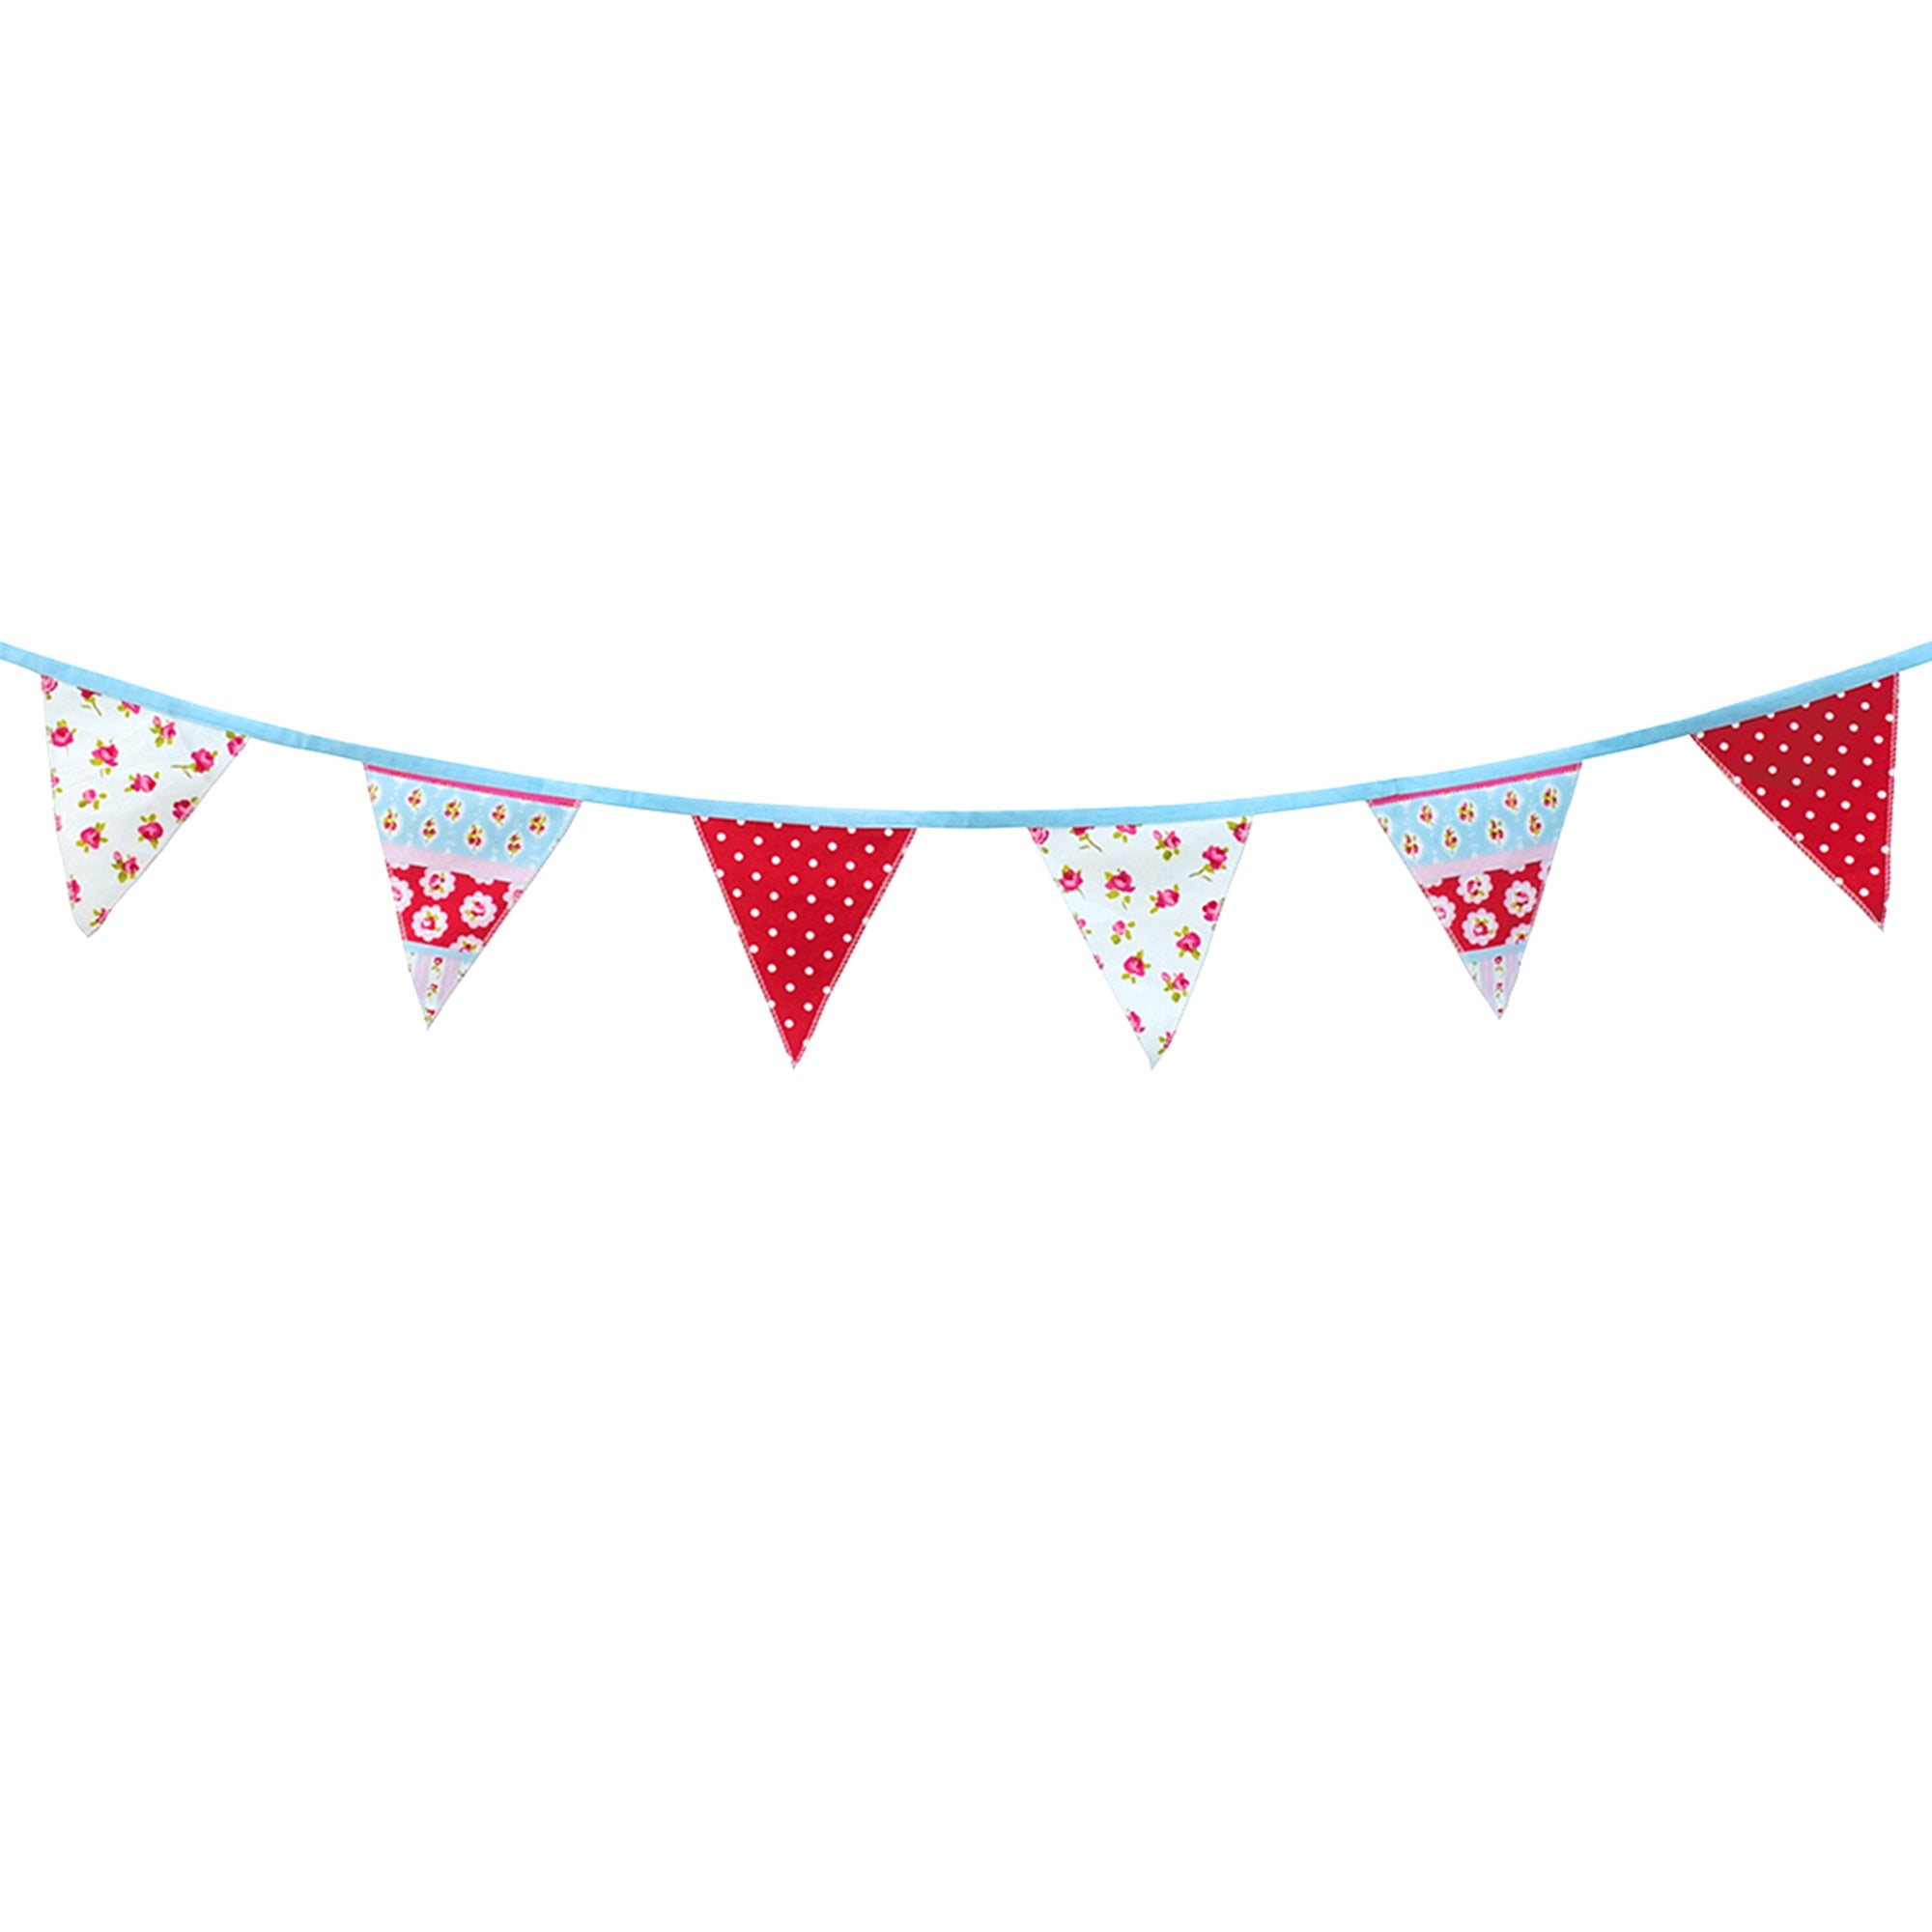 Rose and Ellis Allexton Collection Fabric Bunting